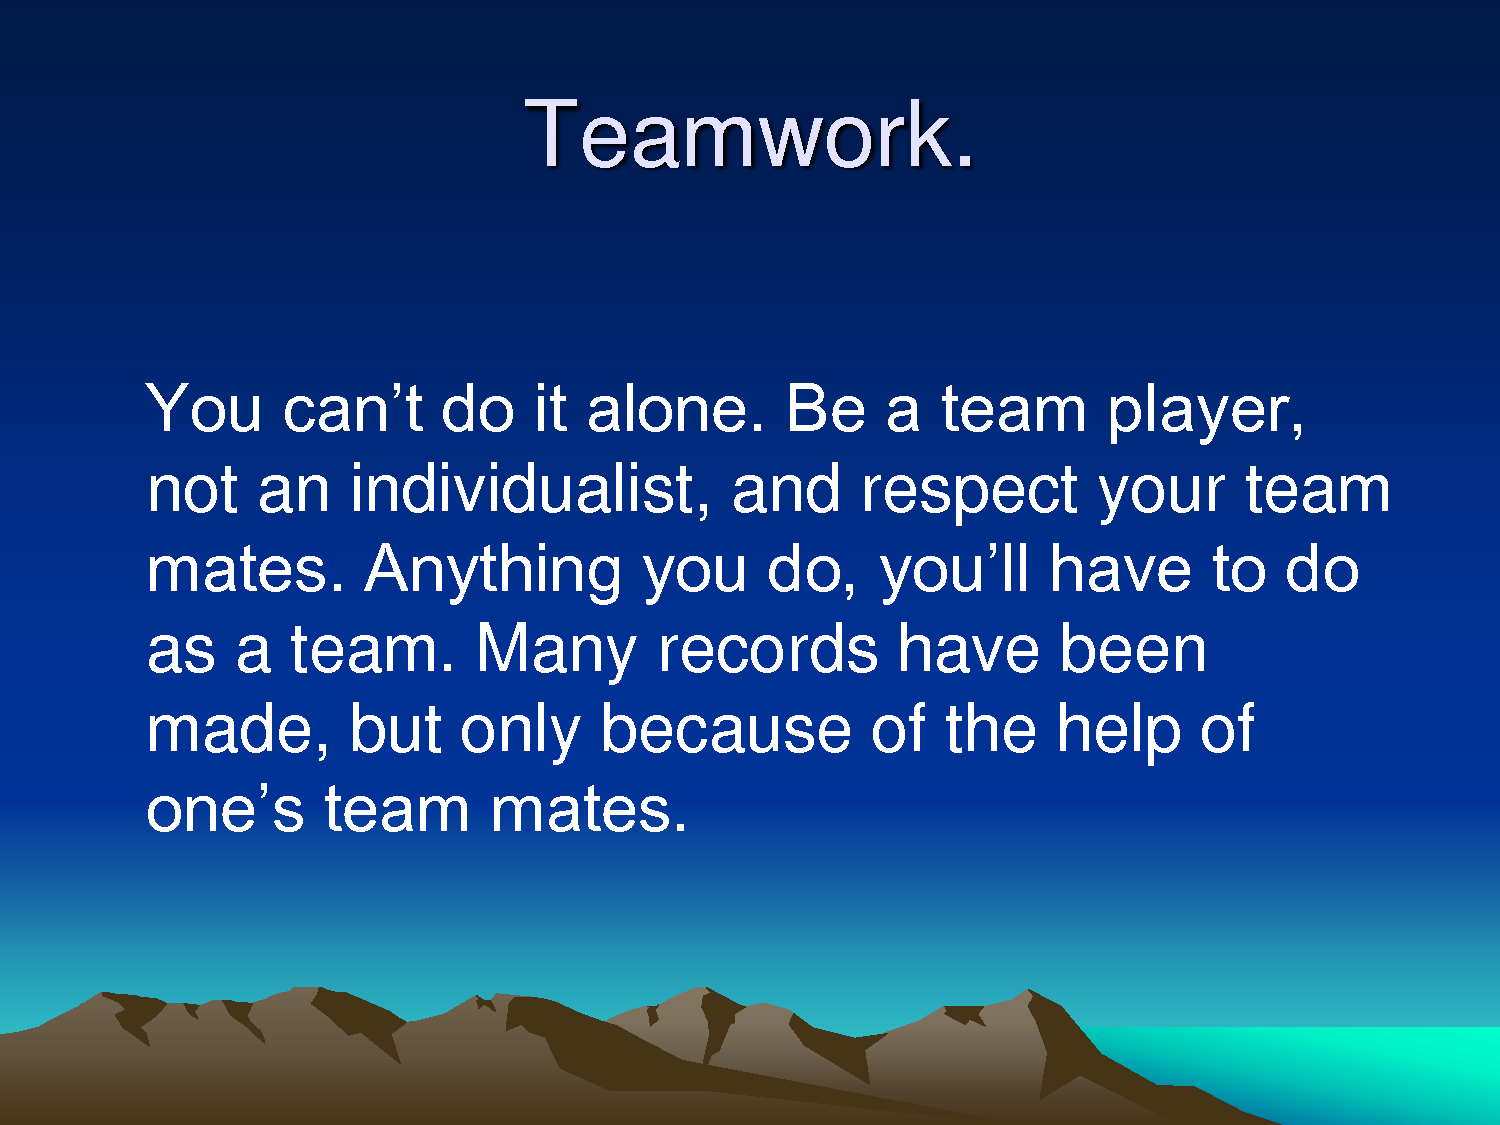 Team Work Quotes 57 Best Teamwork Quotes & Sayings